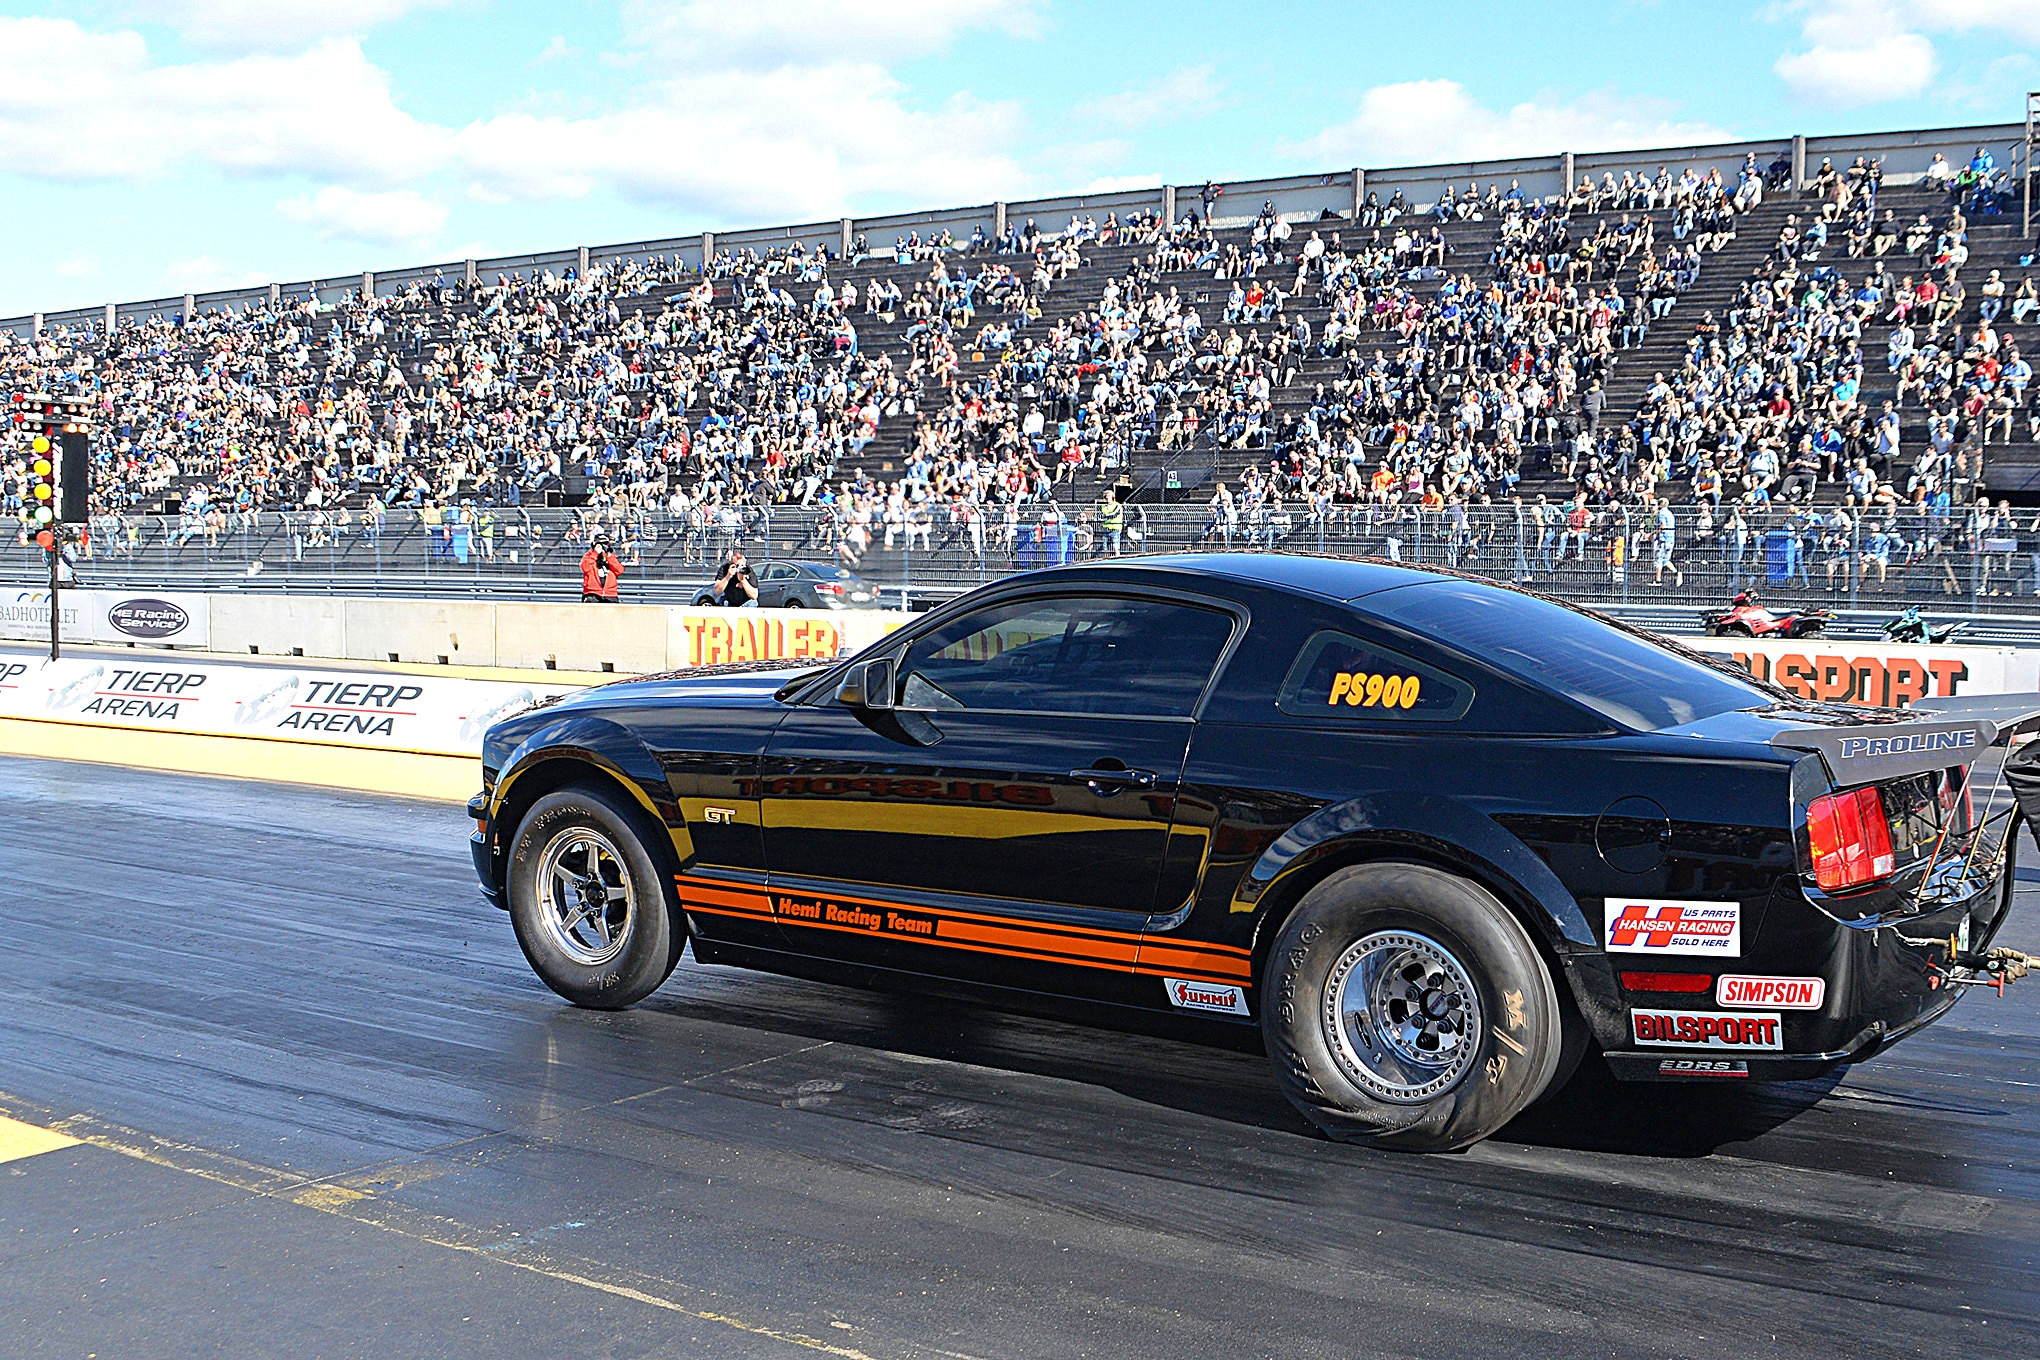 Shelby Mustang Ford Racing At Tierp In Sweden 04